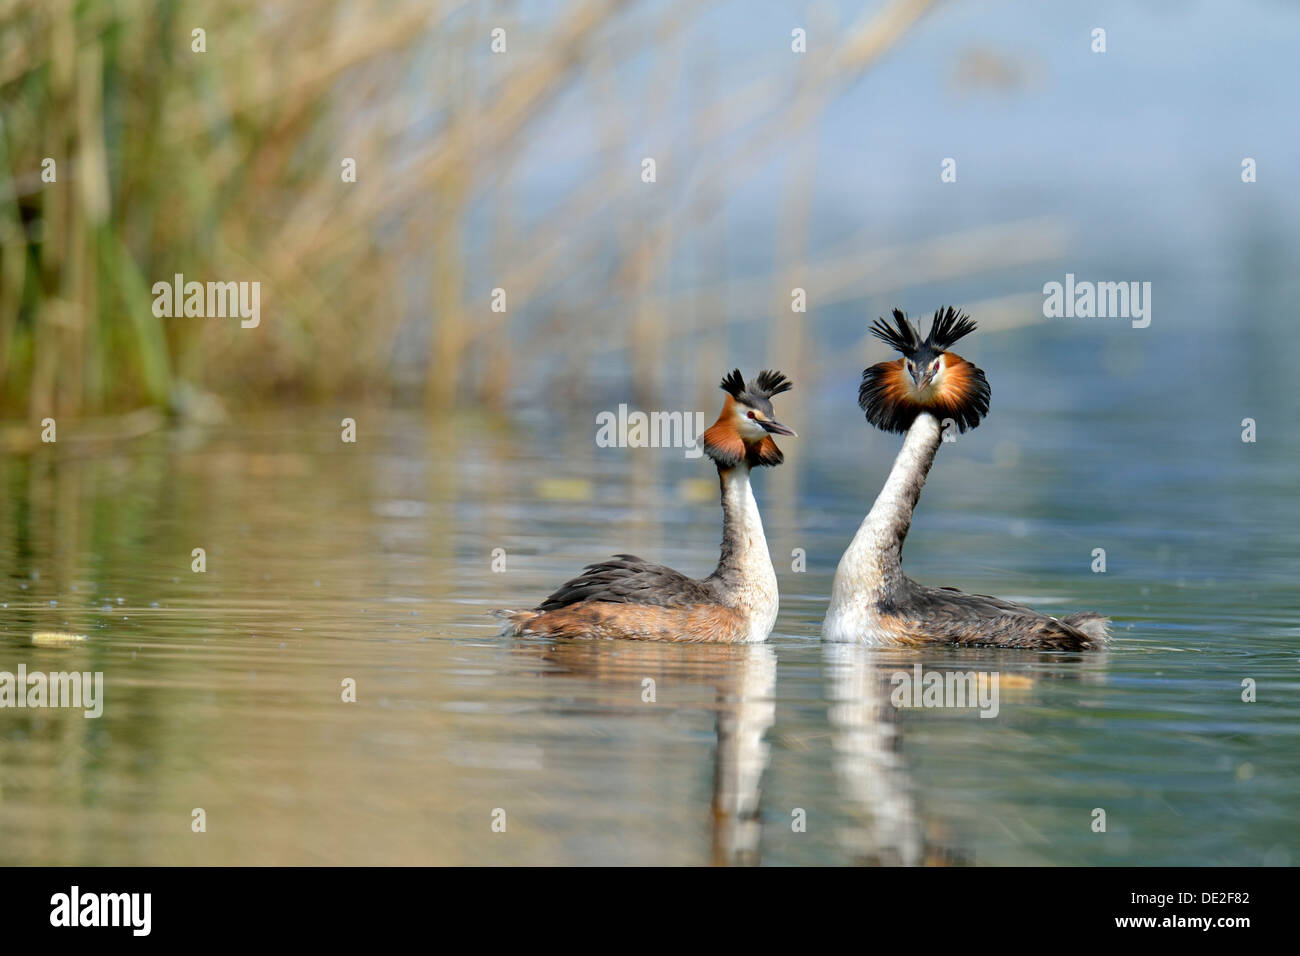 Great Crested Grebes (Podiceps cristatus) during a courtship display, Lake Lucerne, Luzern, Canton of Lucerne, Switzerland Stock Photo